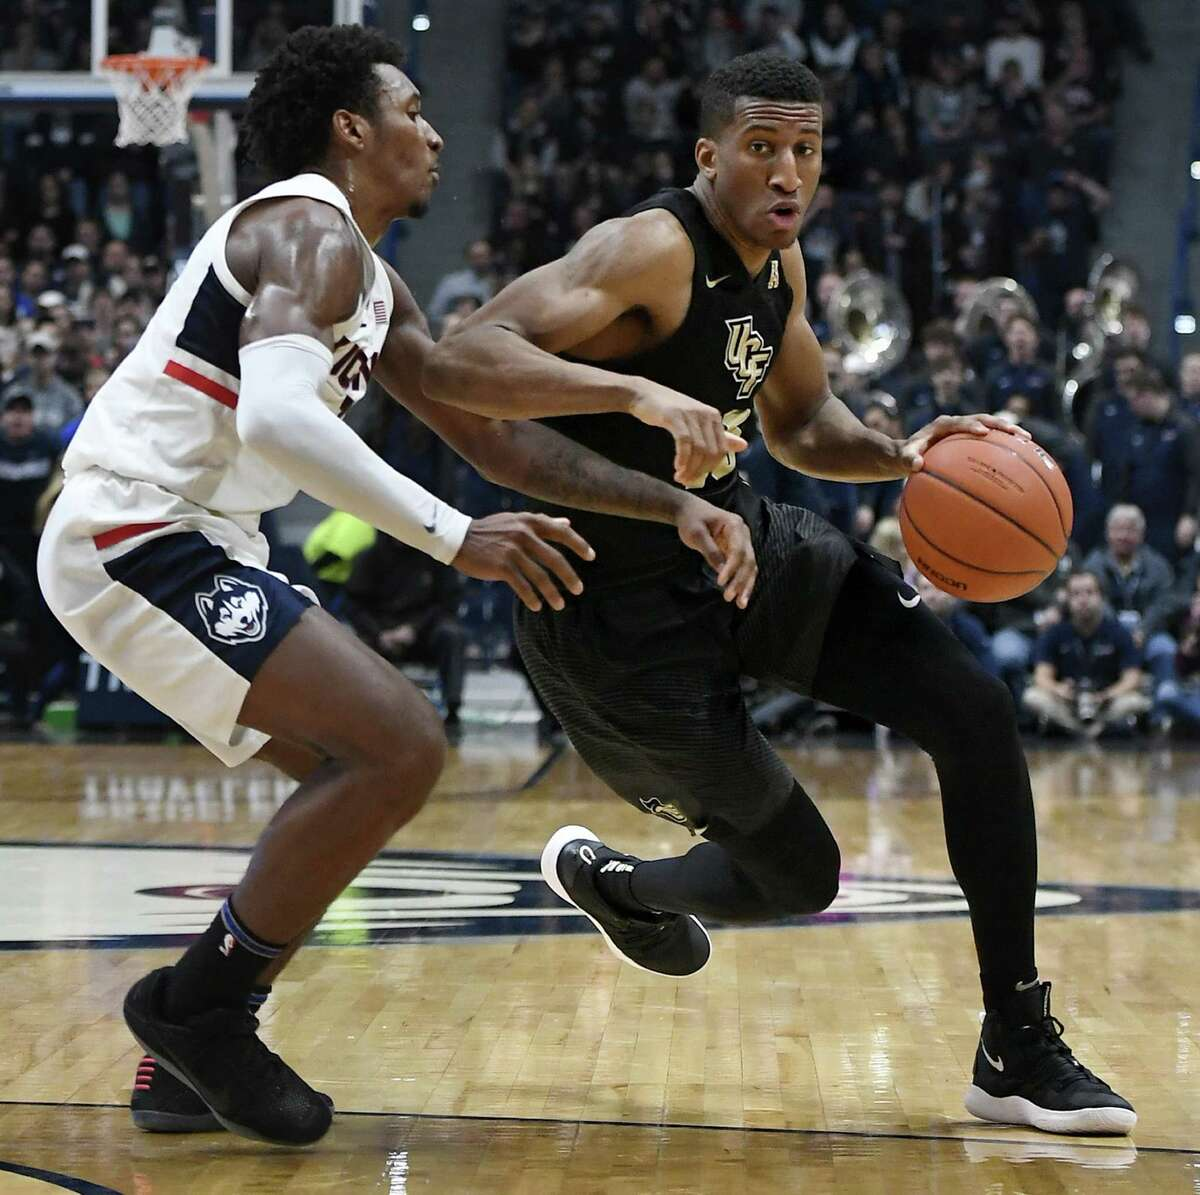 UCF's Aubrey Dawkins dribbles as UConn's Christian Vital defends during the first half on Saturday.